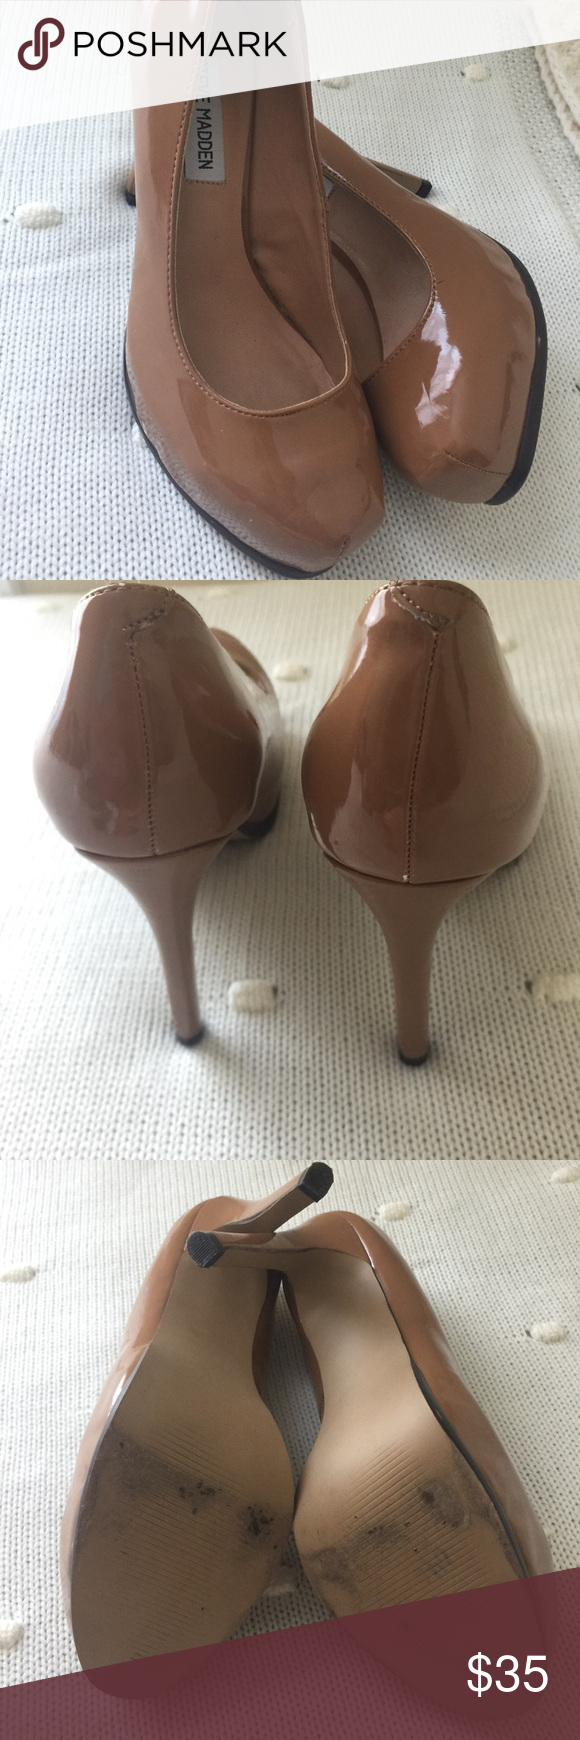 Tan Nude Steve Madden Pumps Very minor signs of use and still in very good,